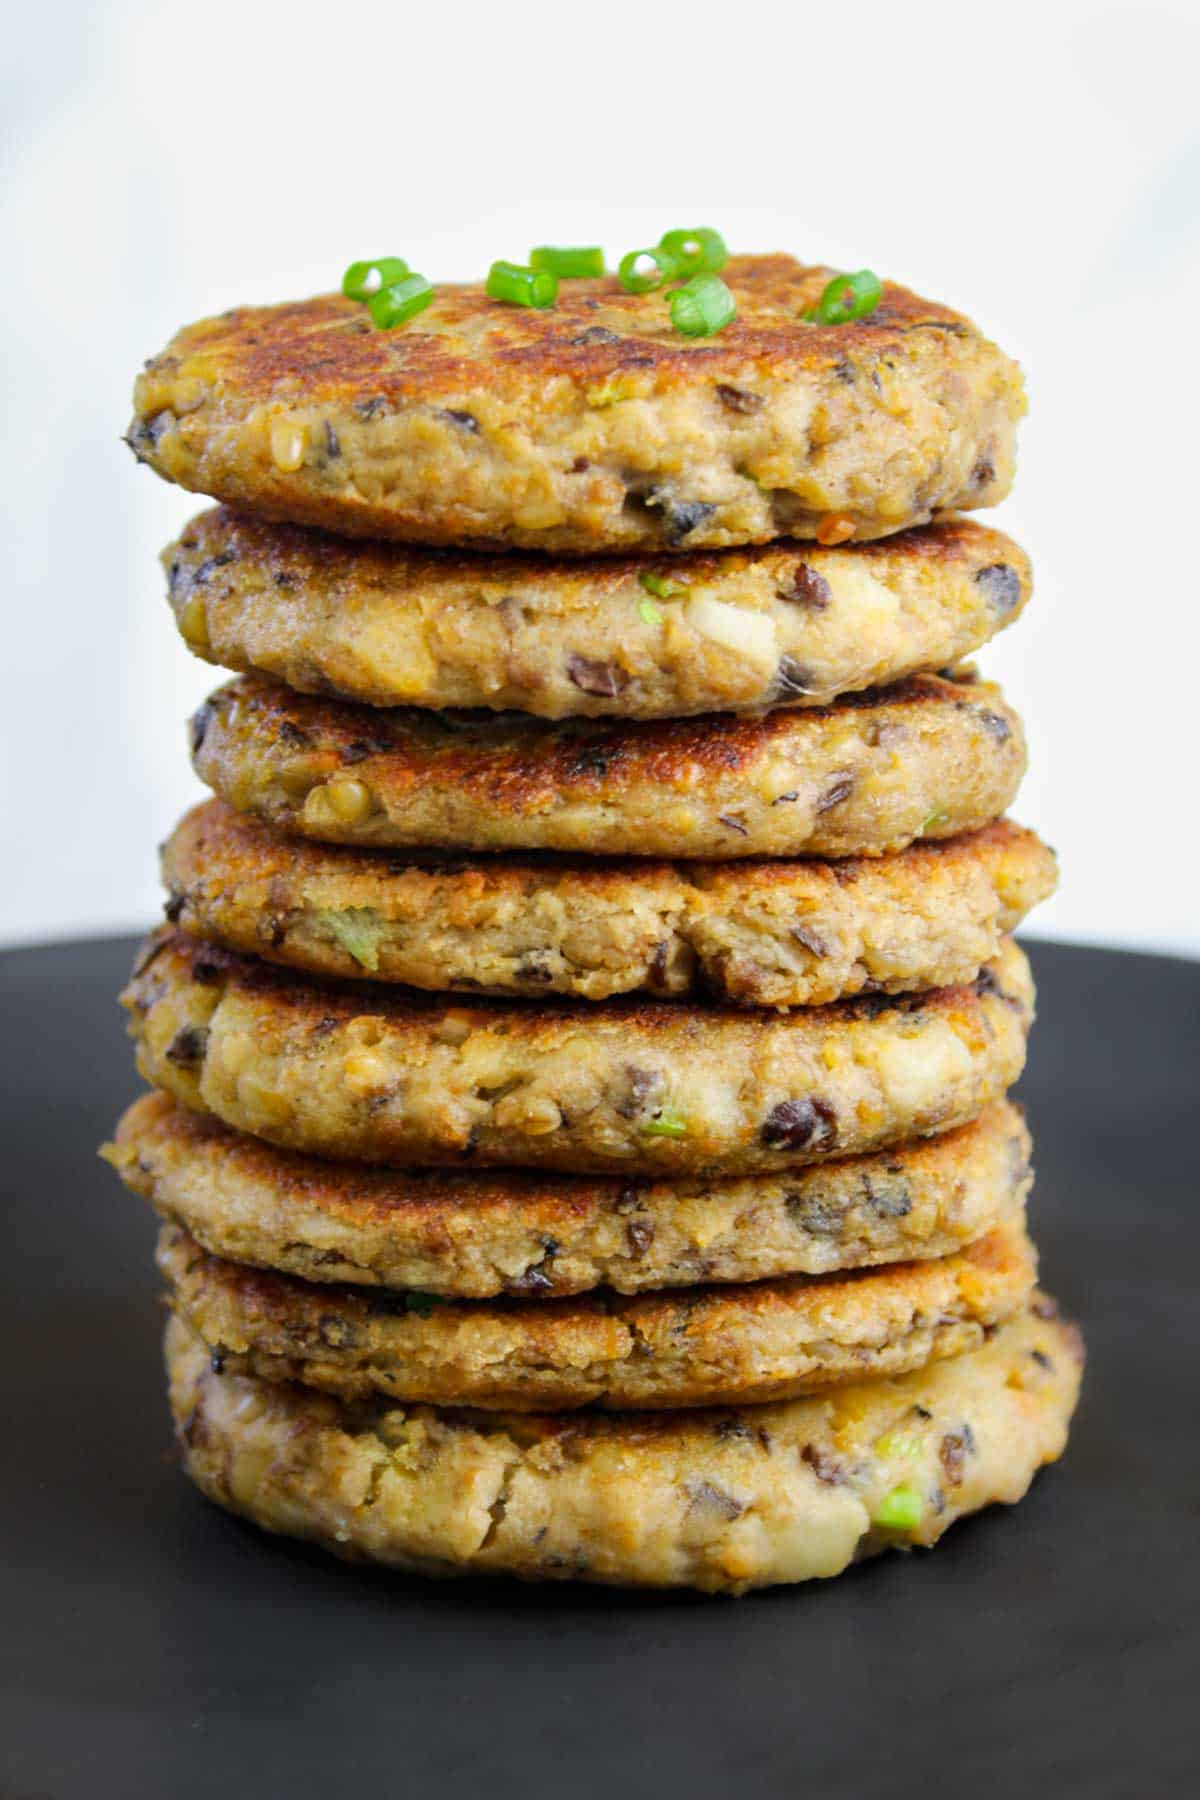 Tall Stack of Haggis Fritters on Plate